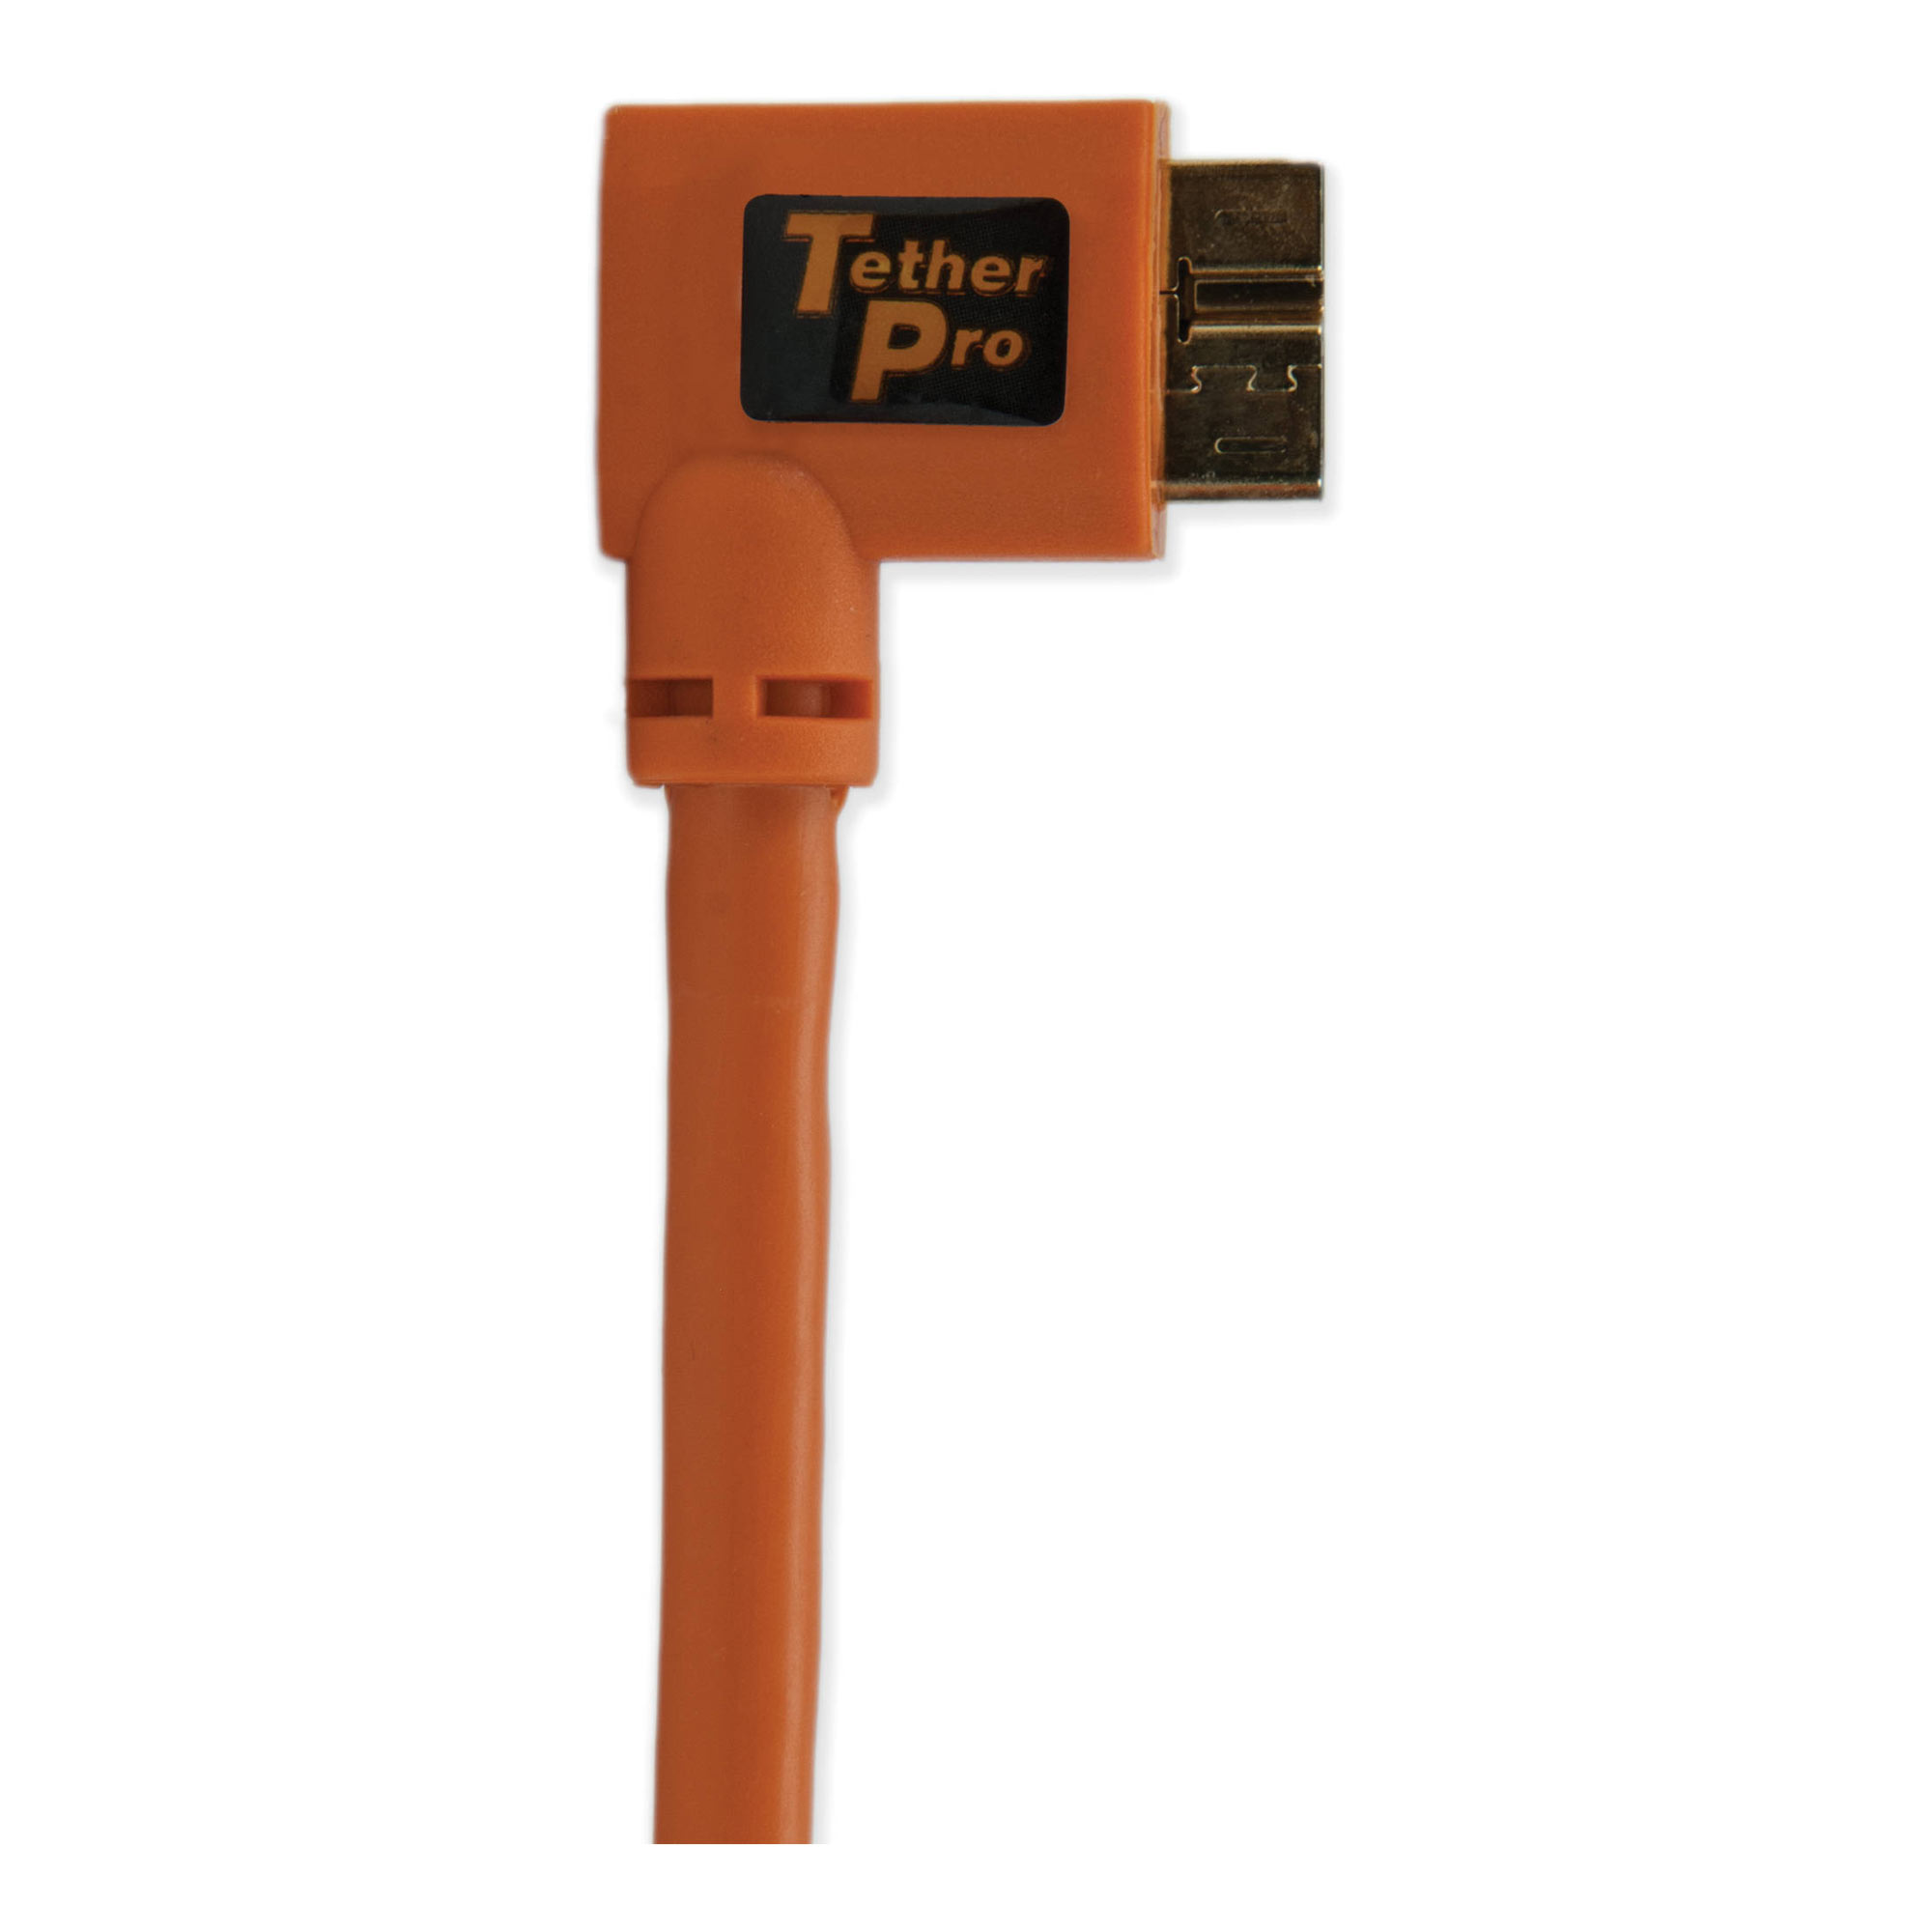 15 ft. TetherPro USB 3.0 Male A to Micro-B Right Angle Cable Orange